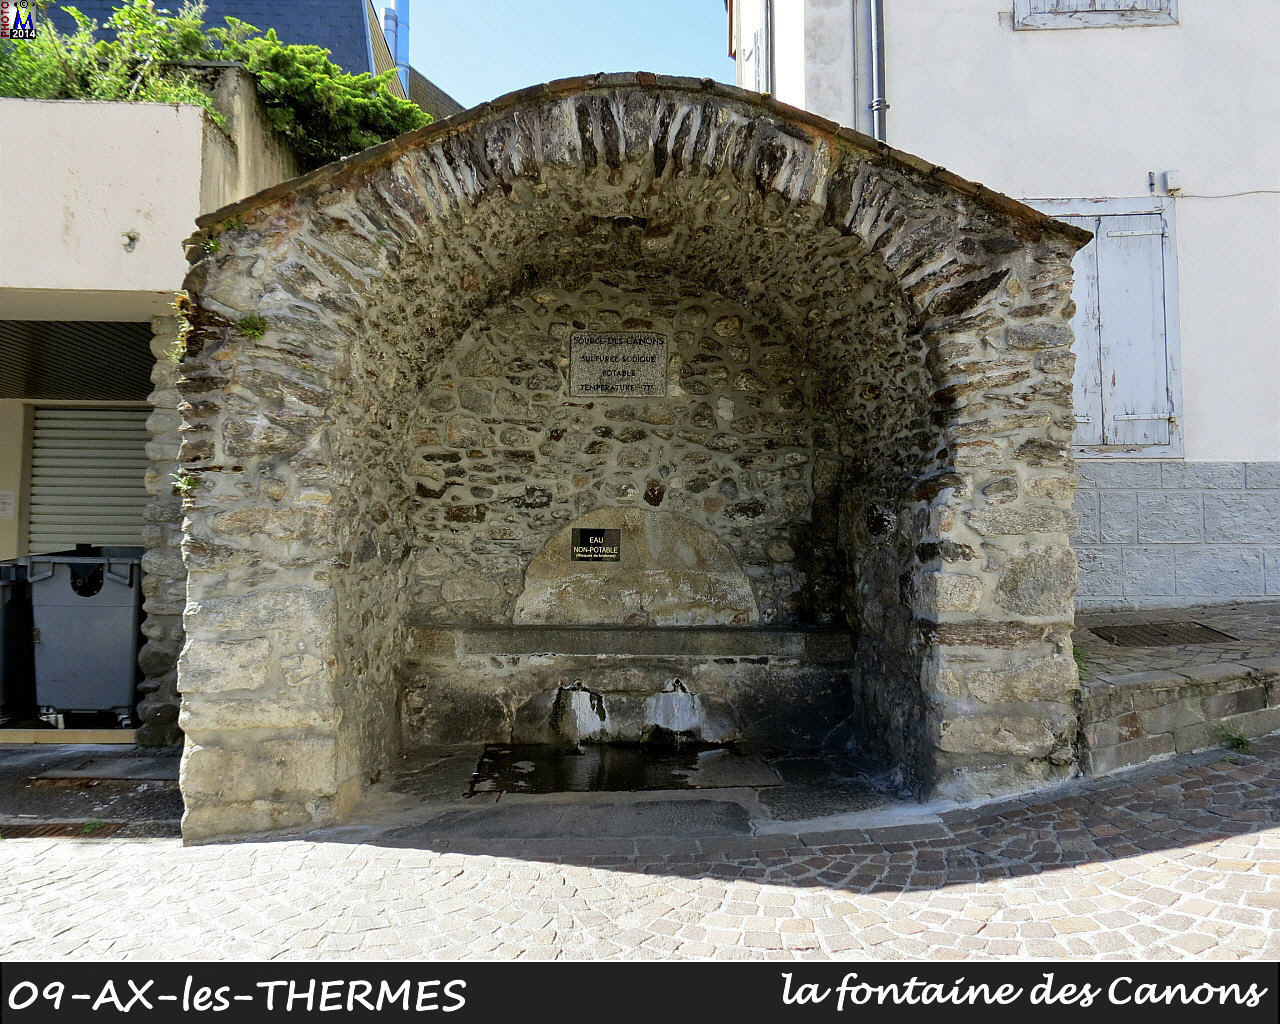 09AX-THERMES_fontaineC_100.jpg